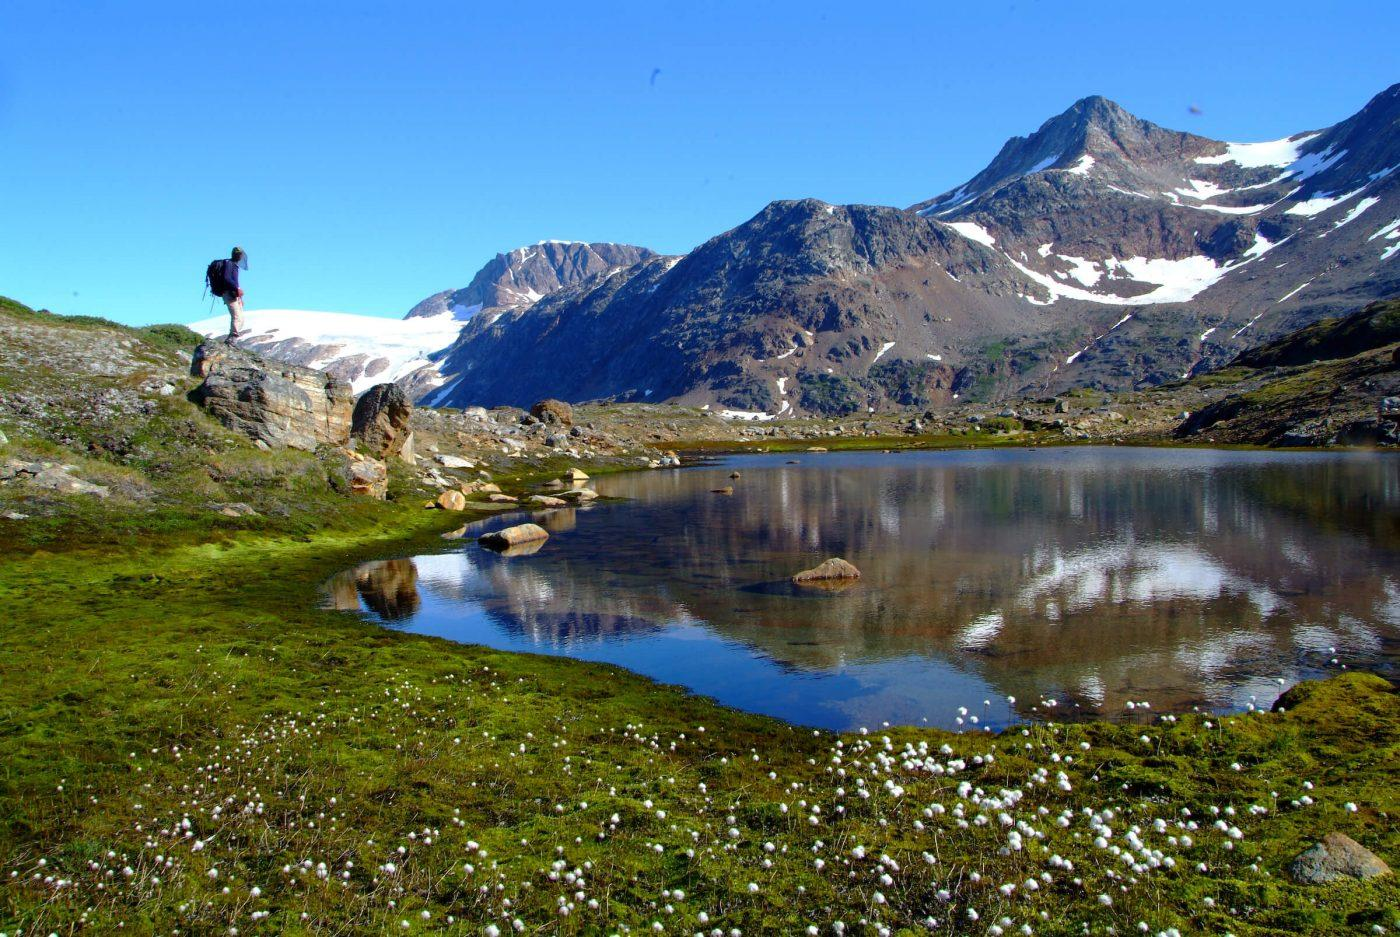 Hiking in the East Greenland high country in the Tasiilaq district. By Erwin Reinthaler